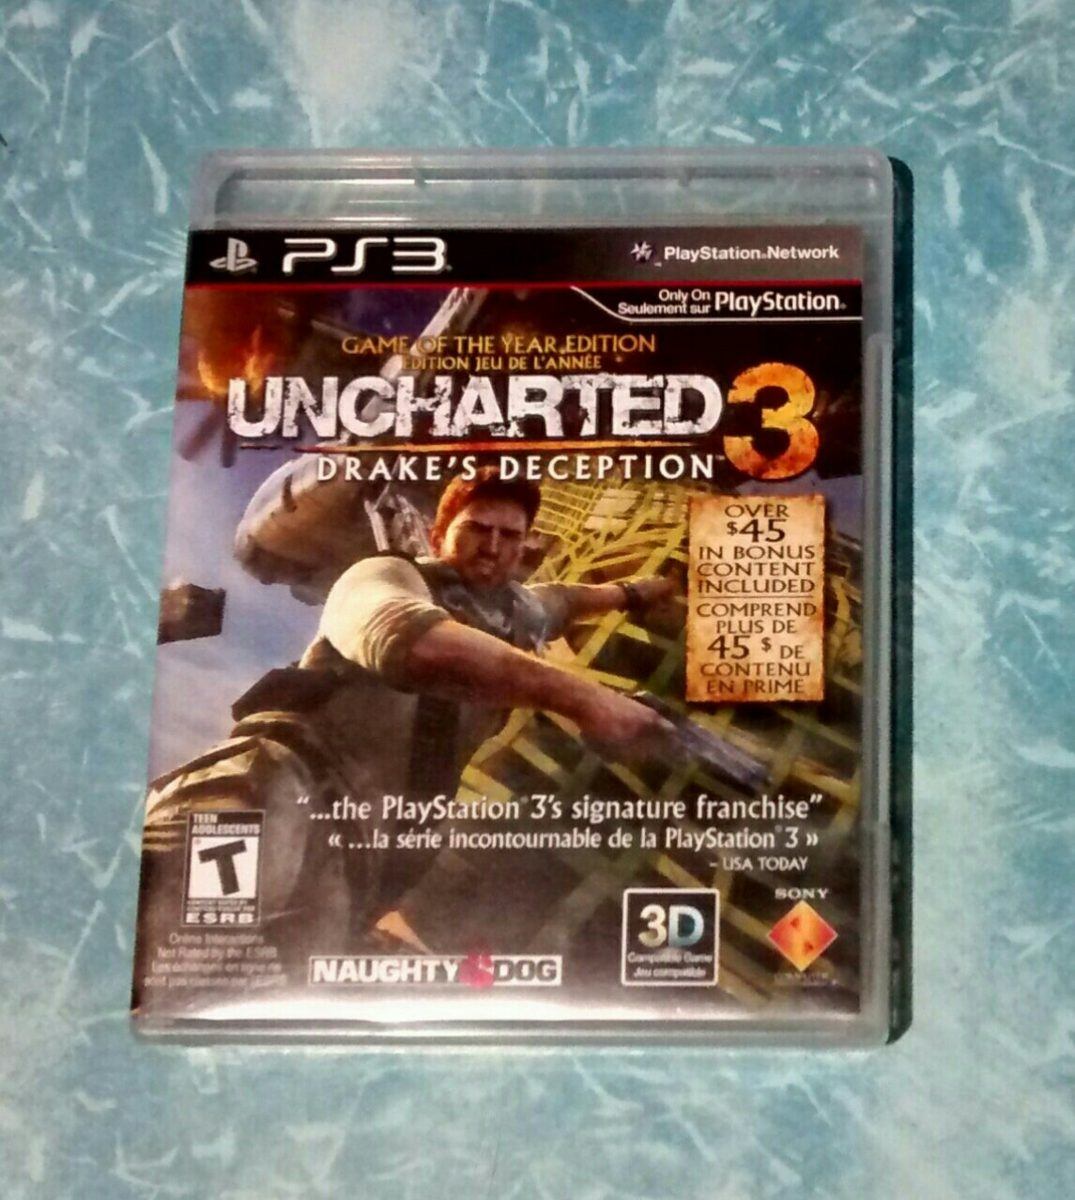 ps3 uncharted 3 - drake's deception